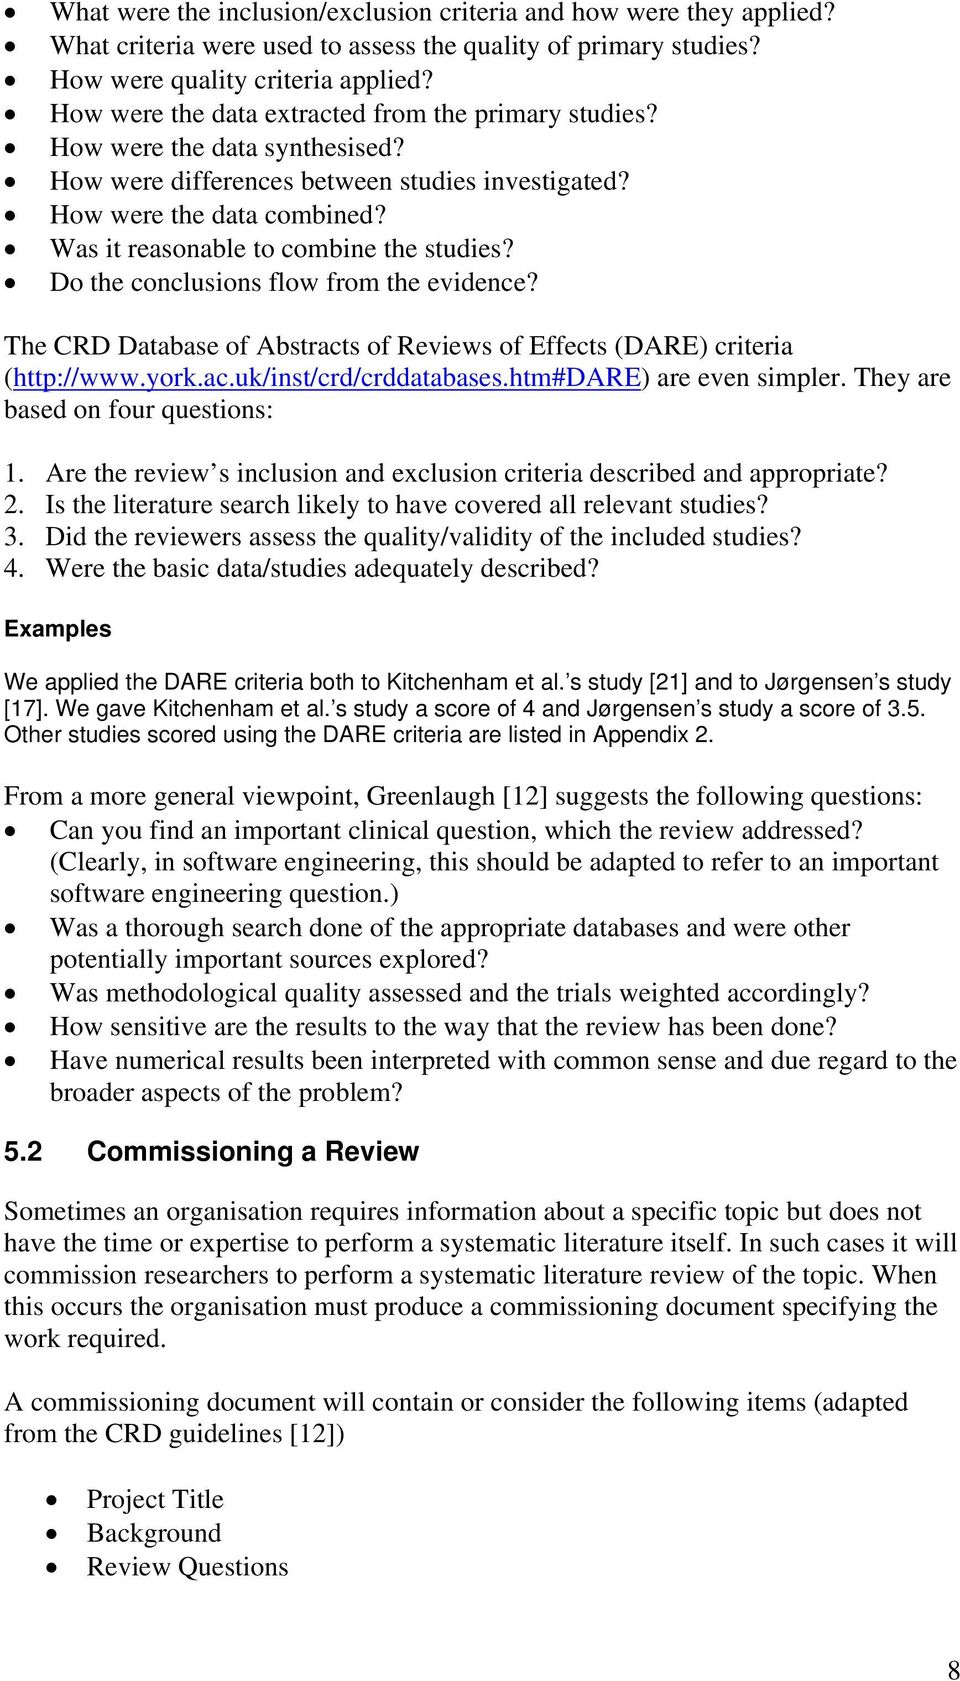 Was it reasonable to combine the studies? Do the conclusions flow from the evidence? The CRD Database of Abstracts of Reviews of Effects (DARE) criteria (http://www.york.ac.uk/inst/crd/crddatabases.